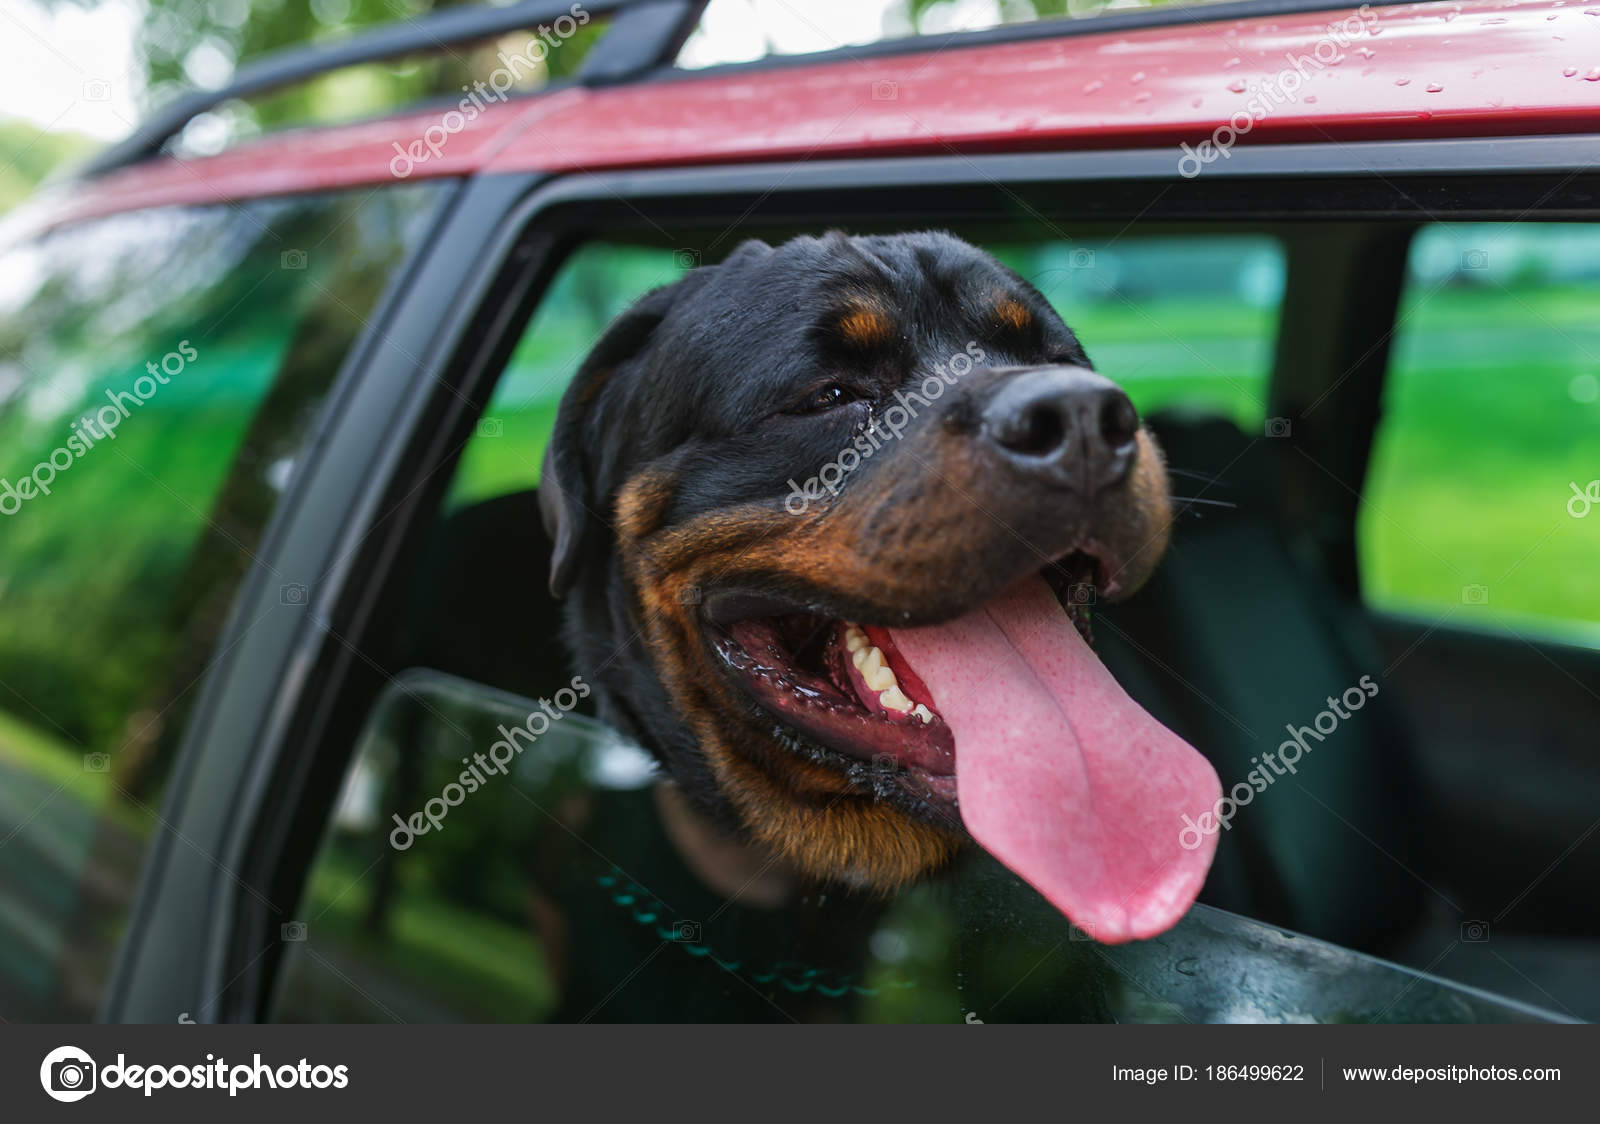 Rottweiler dog poking their head out the window of a moving car stock photo